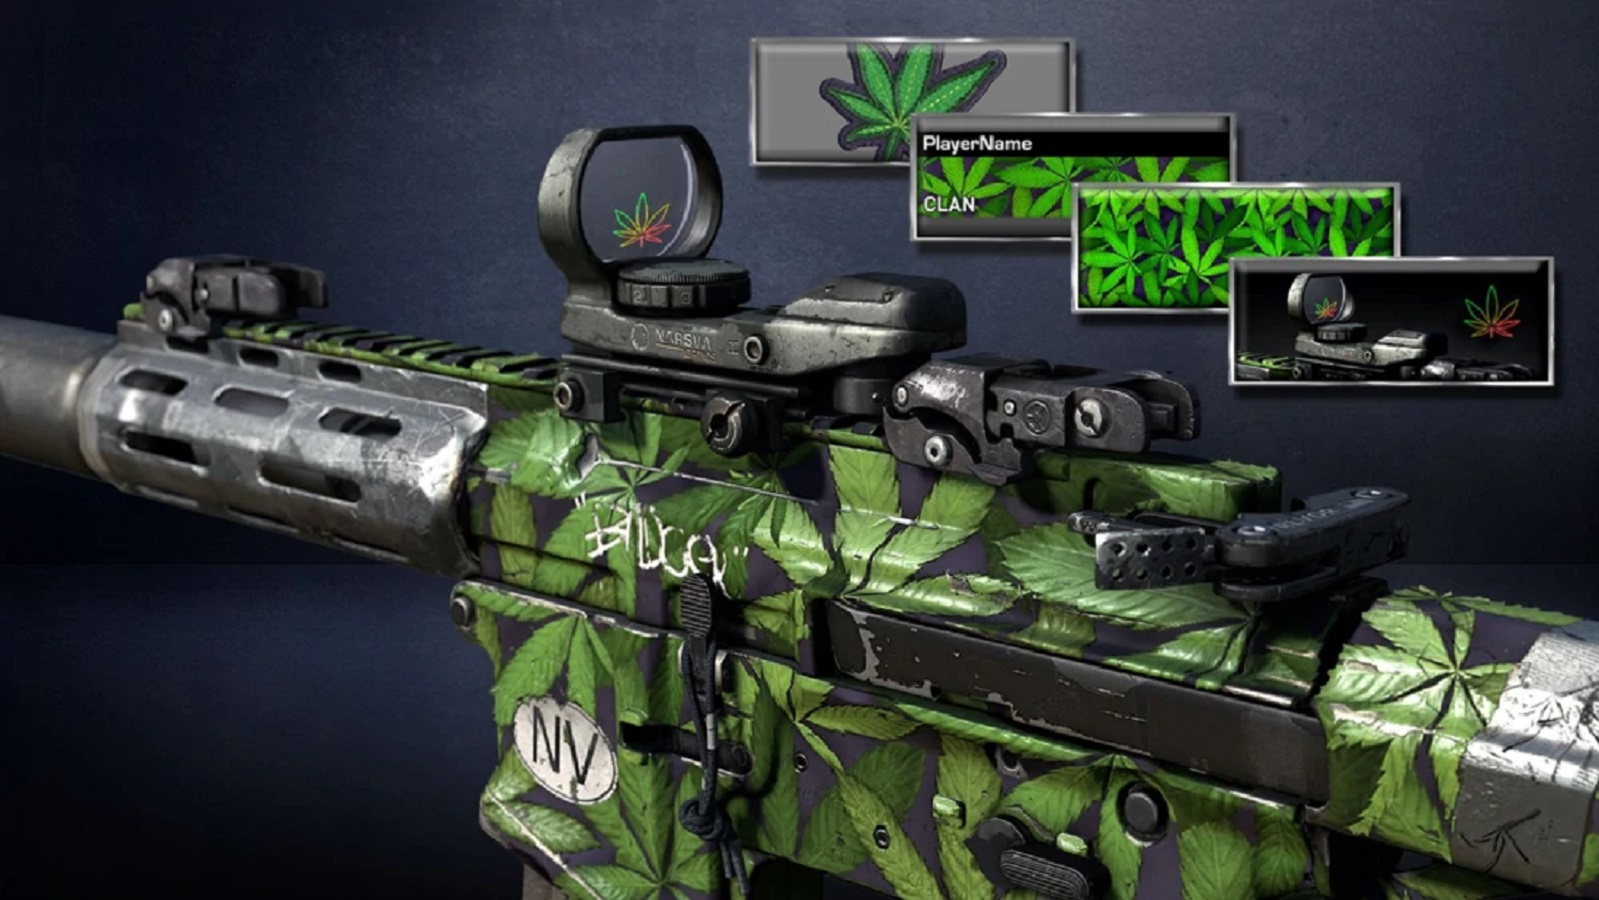 post-image-'Call of Duty' Will Sell Me Weed Guns But Won't Let Me Say 'Weed'